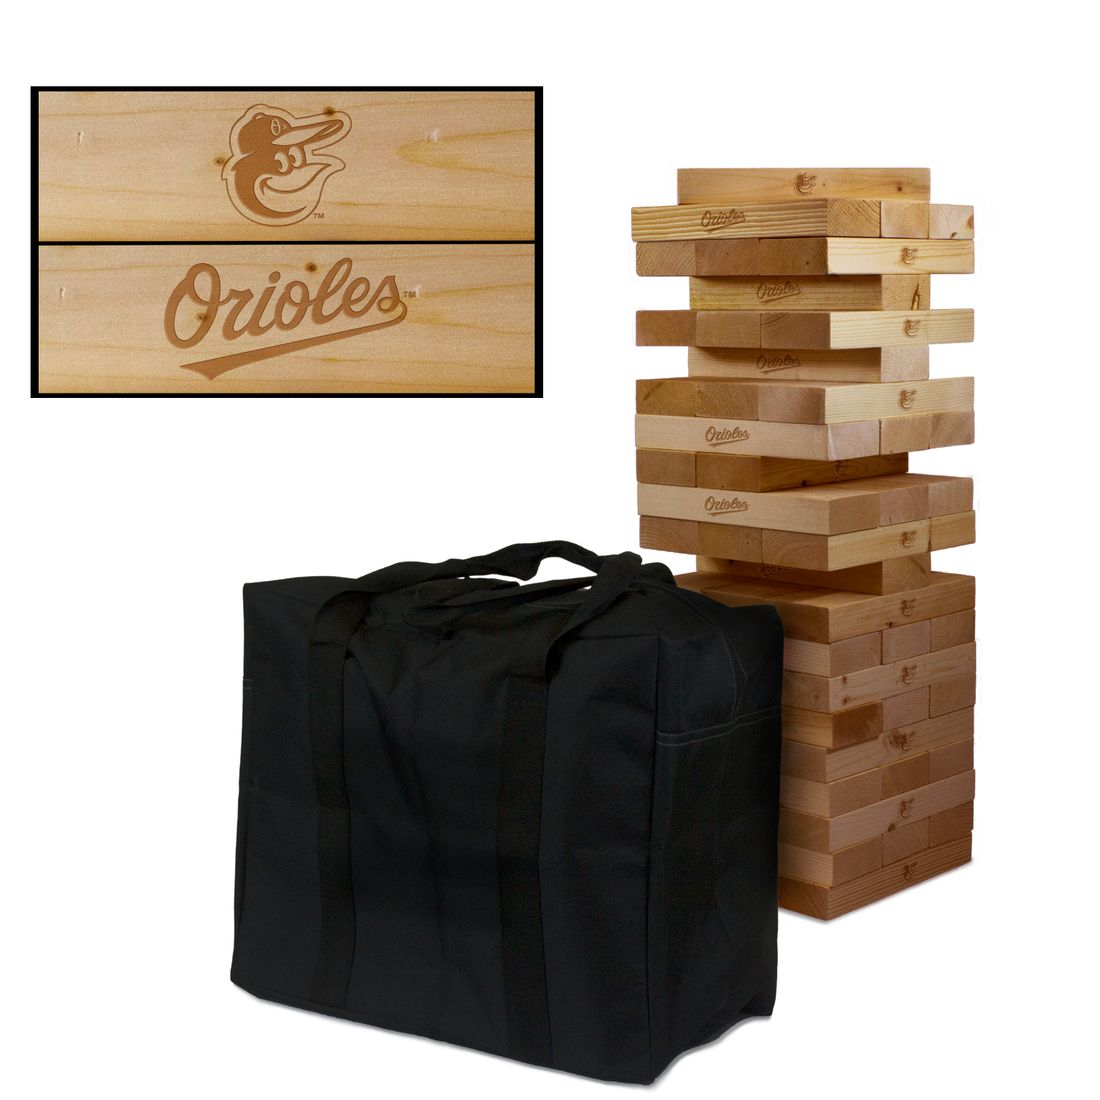 Baltimore Orioles Wooden Tumble Tower Game